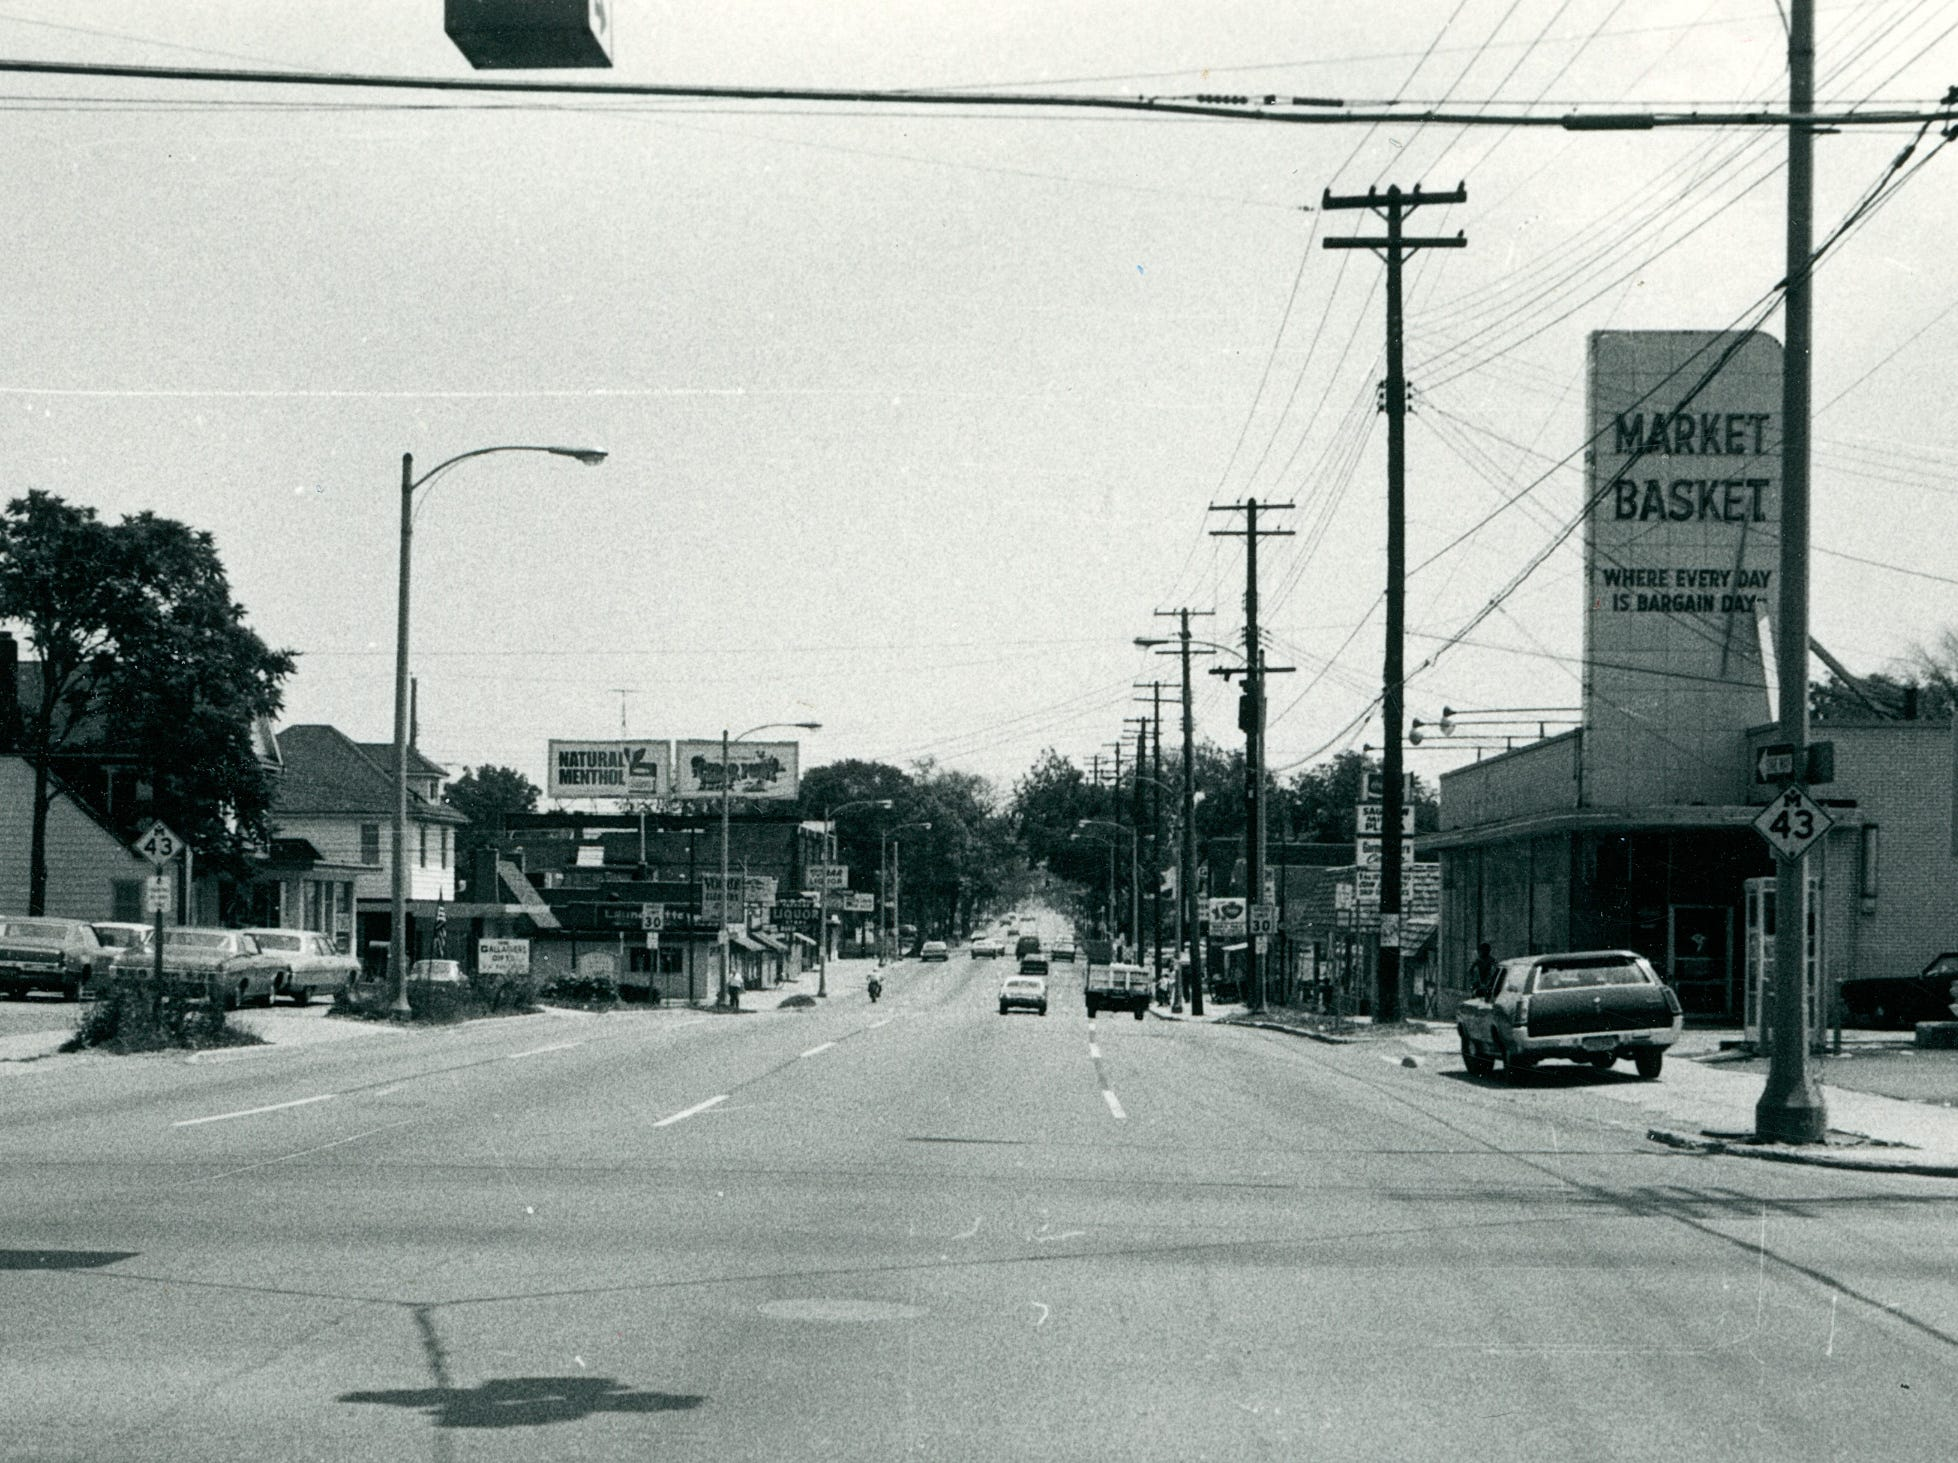 Market Basket, Celentino's Lounge and other businesses on Saginaw Street, date unknown.